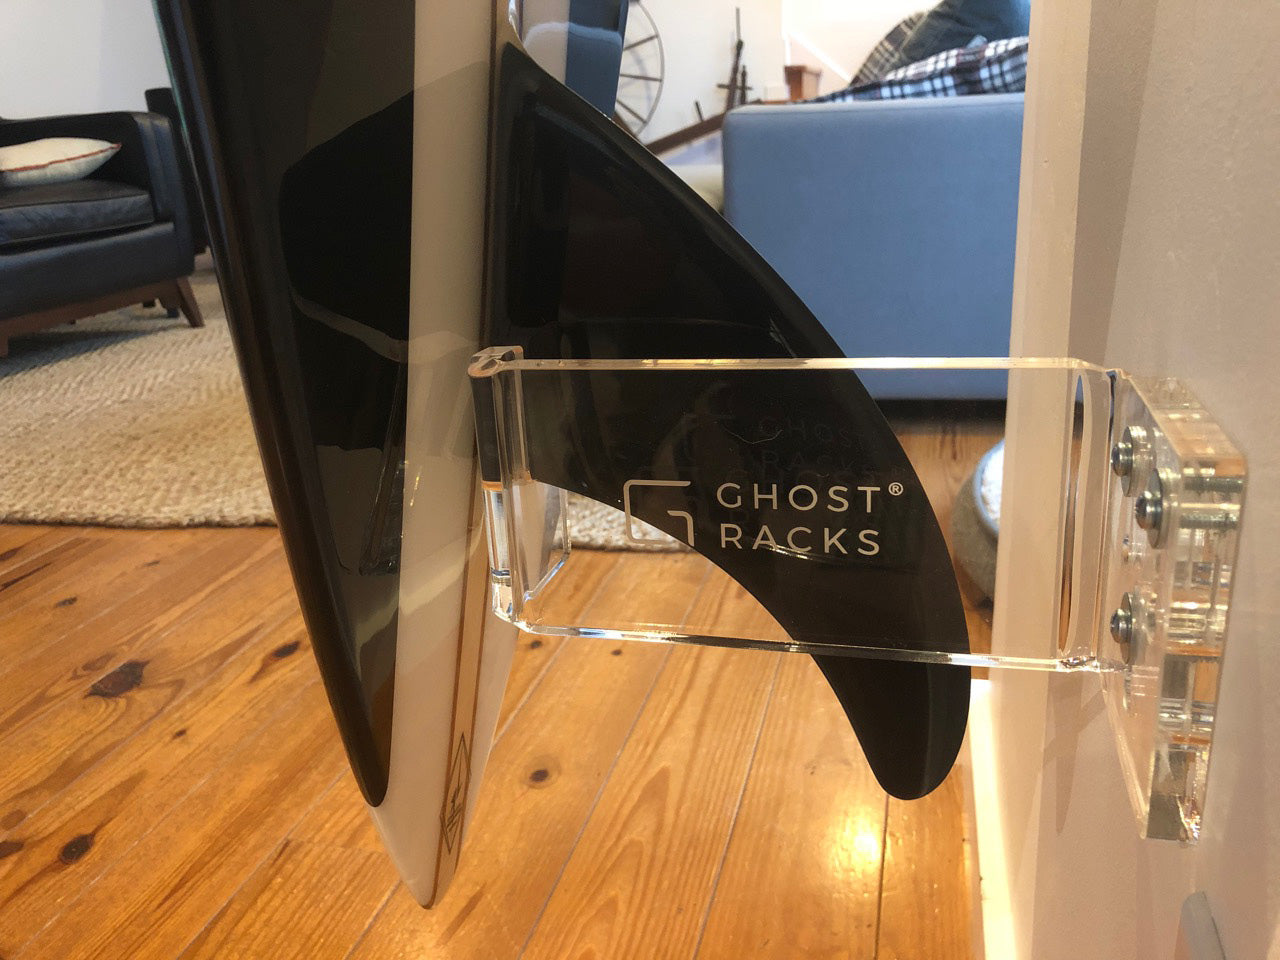 Surfboard fin in Ghost Racks bracket